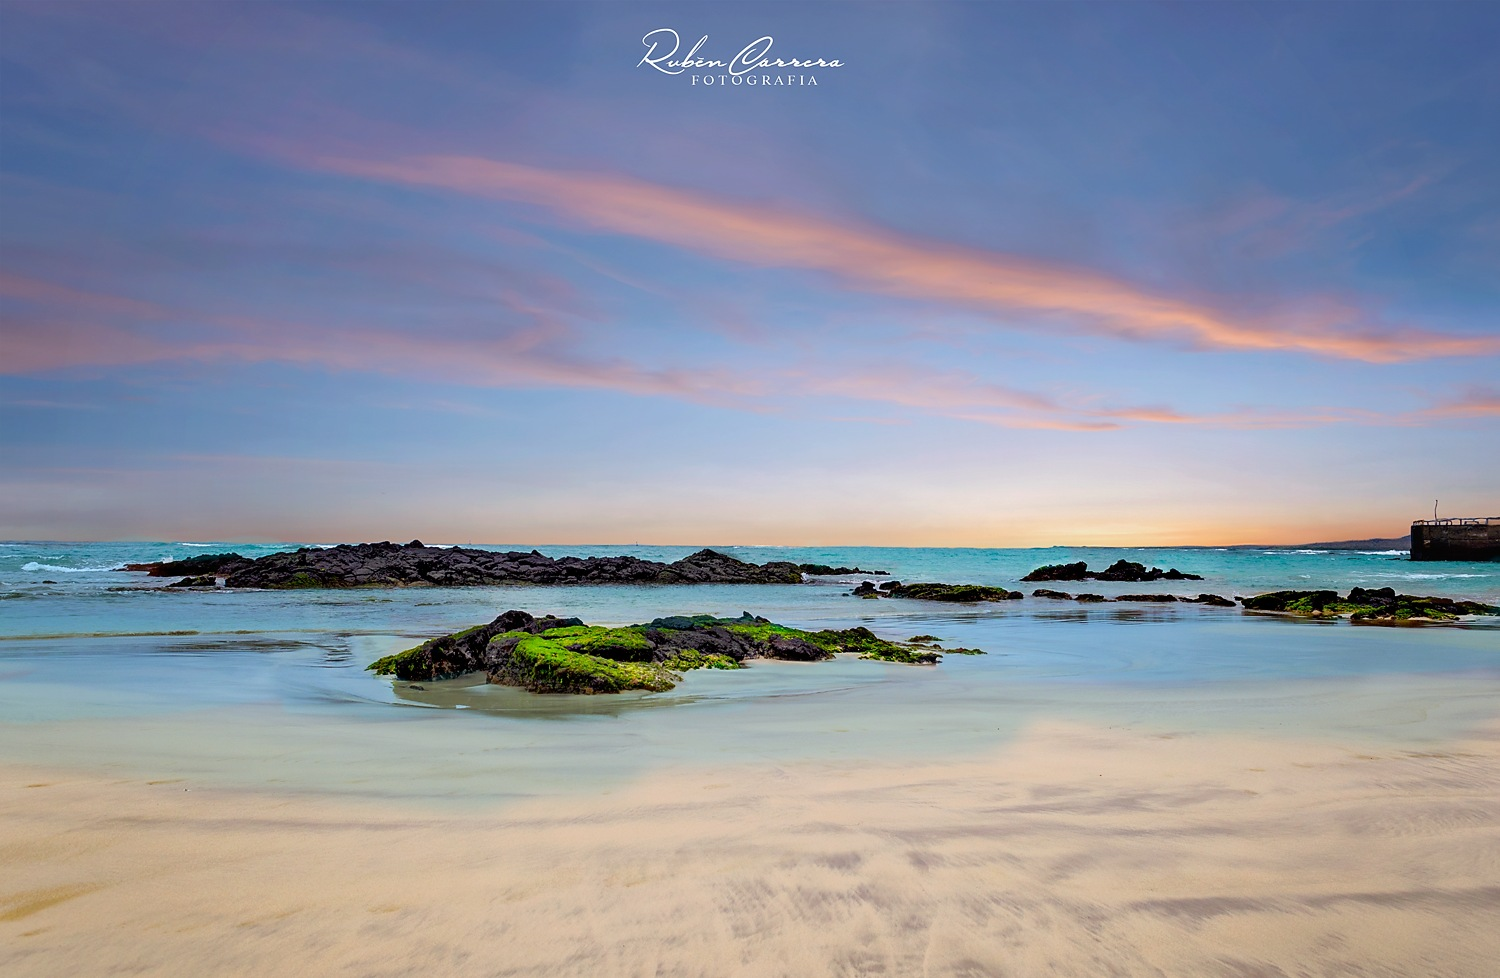 Untitled by Rubén Carrera Photography